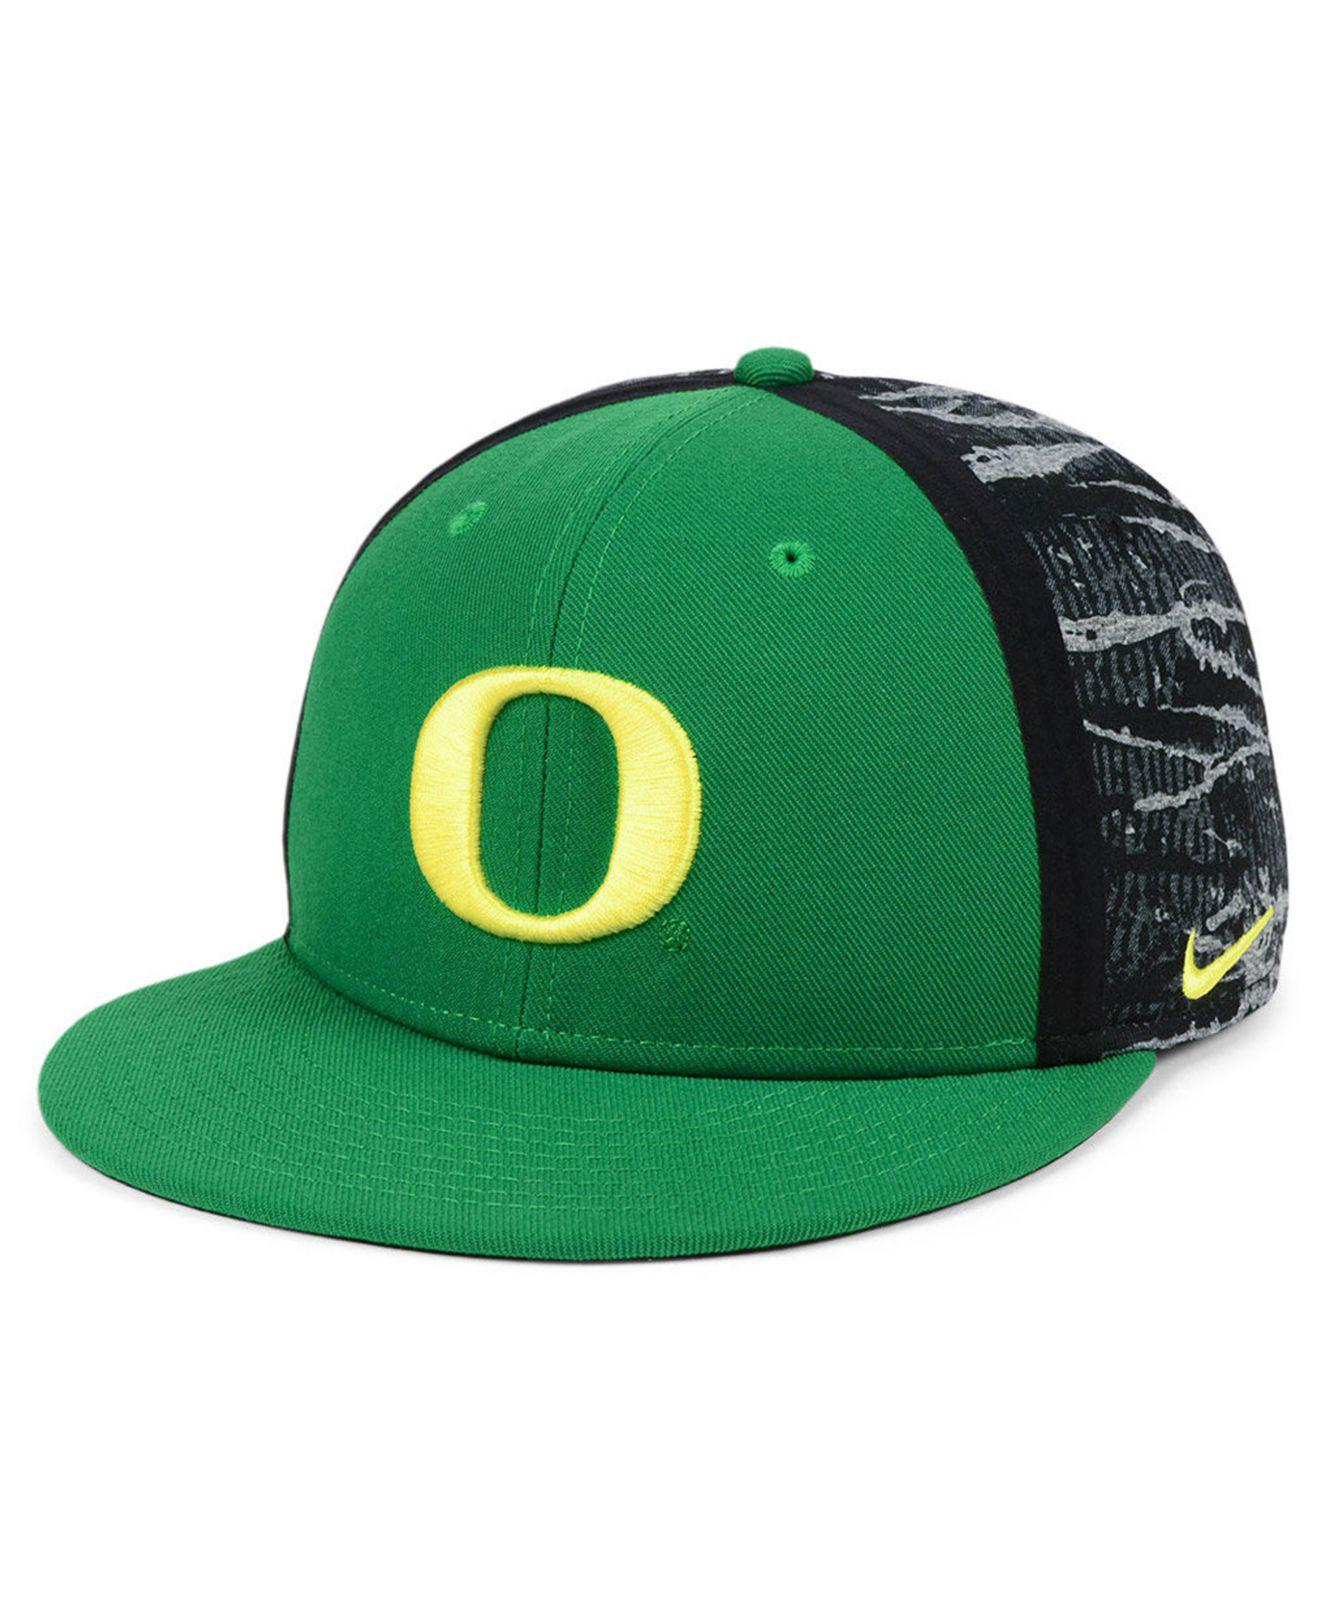 Lyst - Nike Oregon Ducks Dna True Snapback Cap in Green for Men bc562bcb5